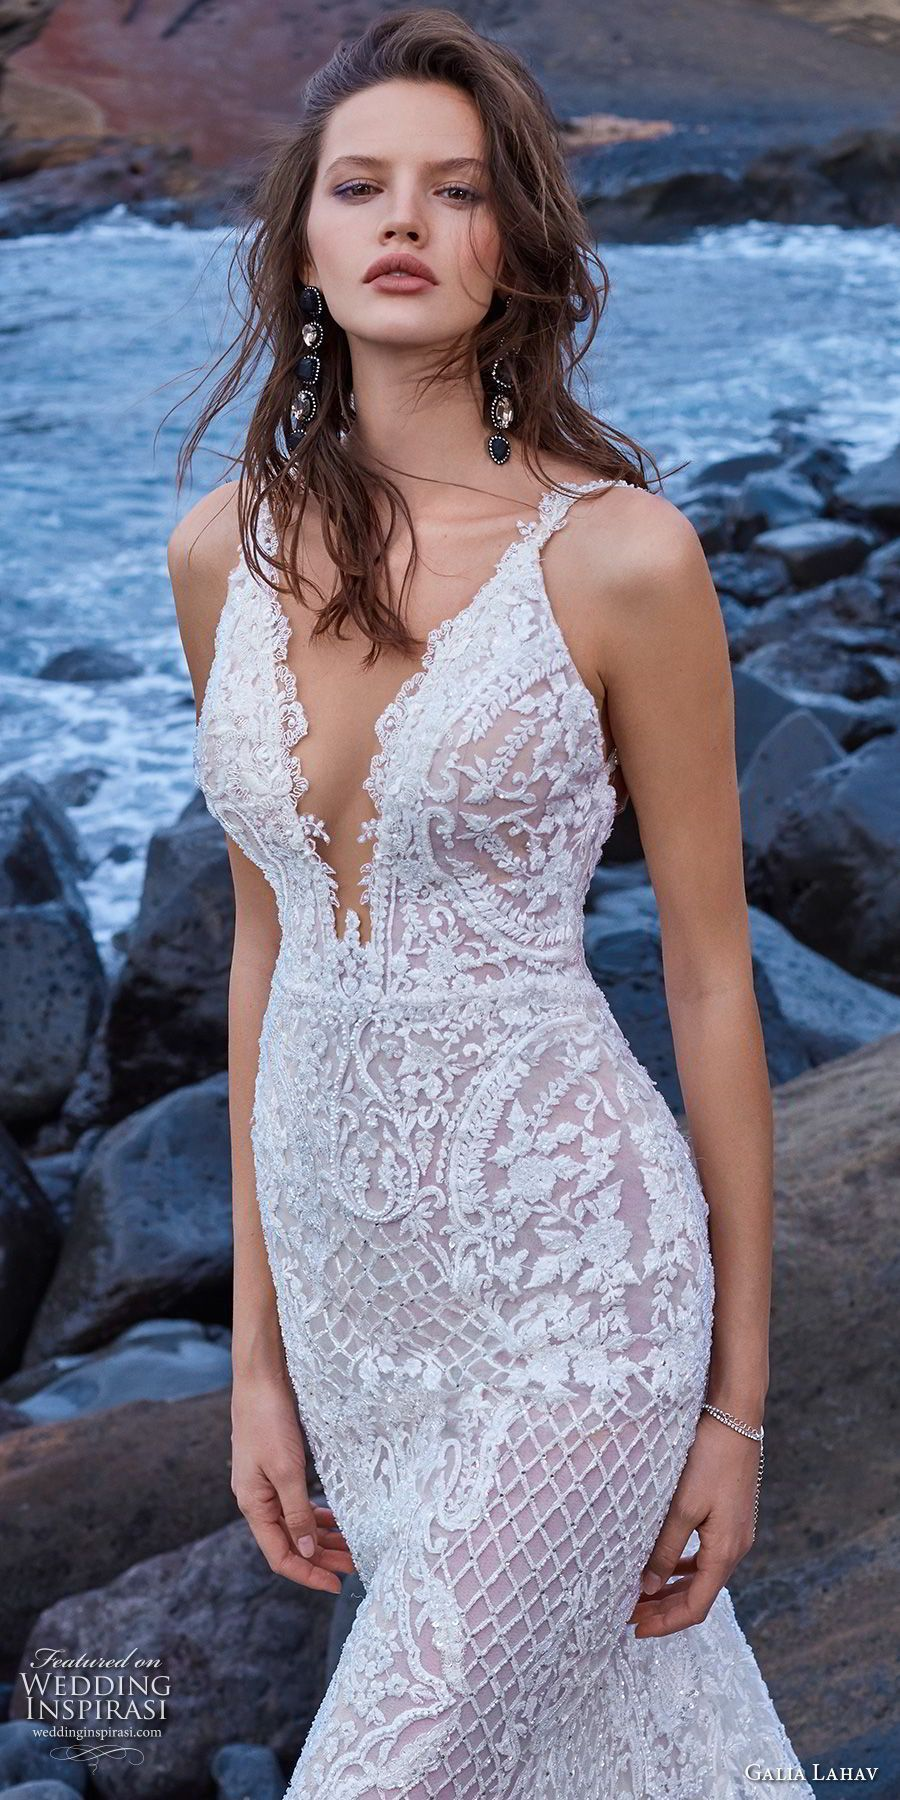 Galia lahav gala bridal sleeveless with strap deep v neck full